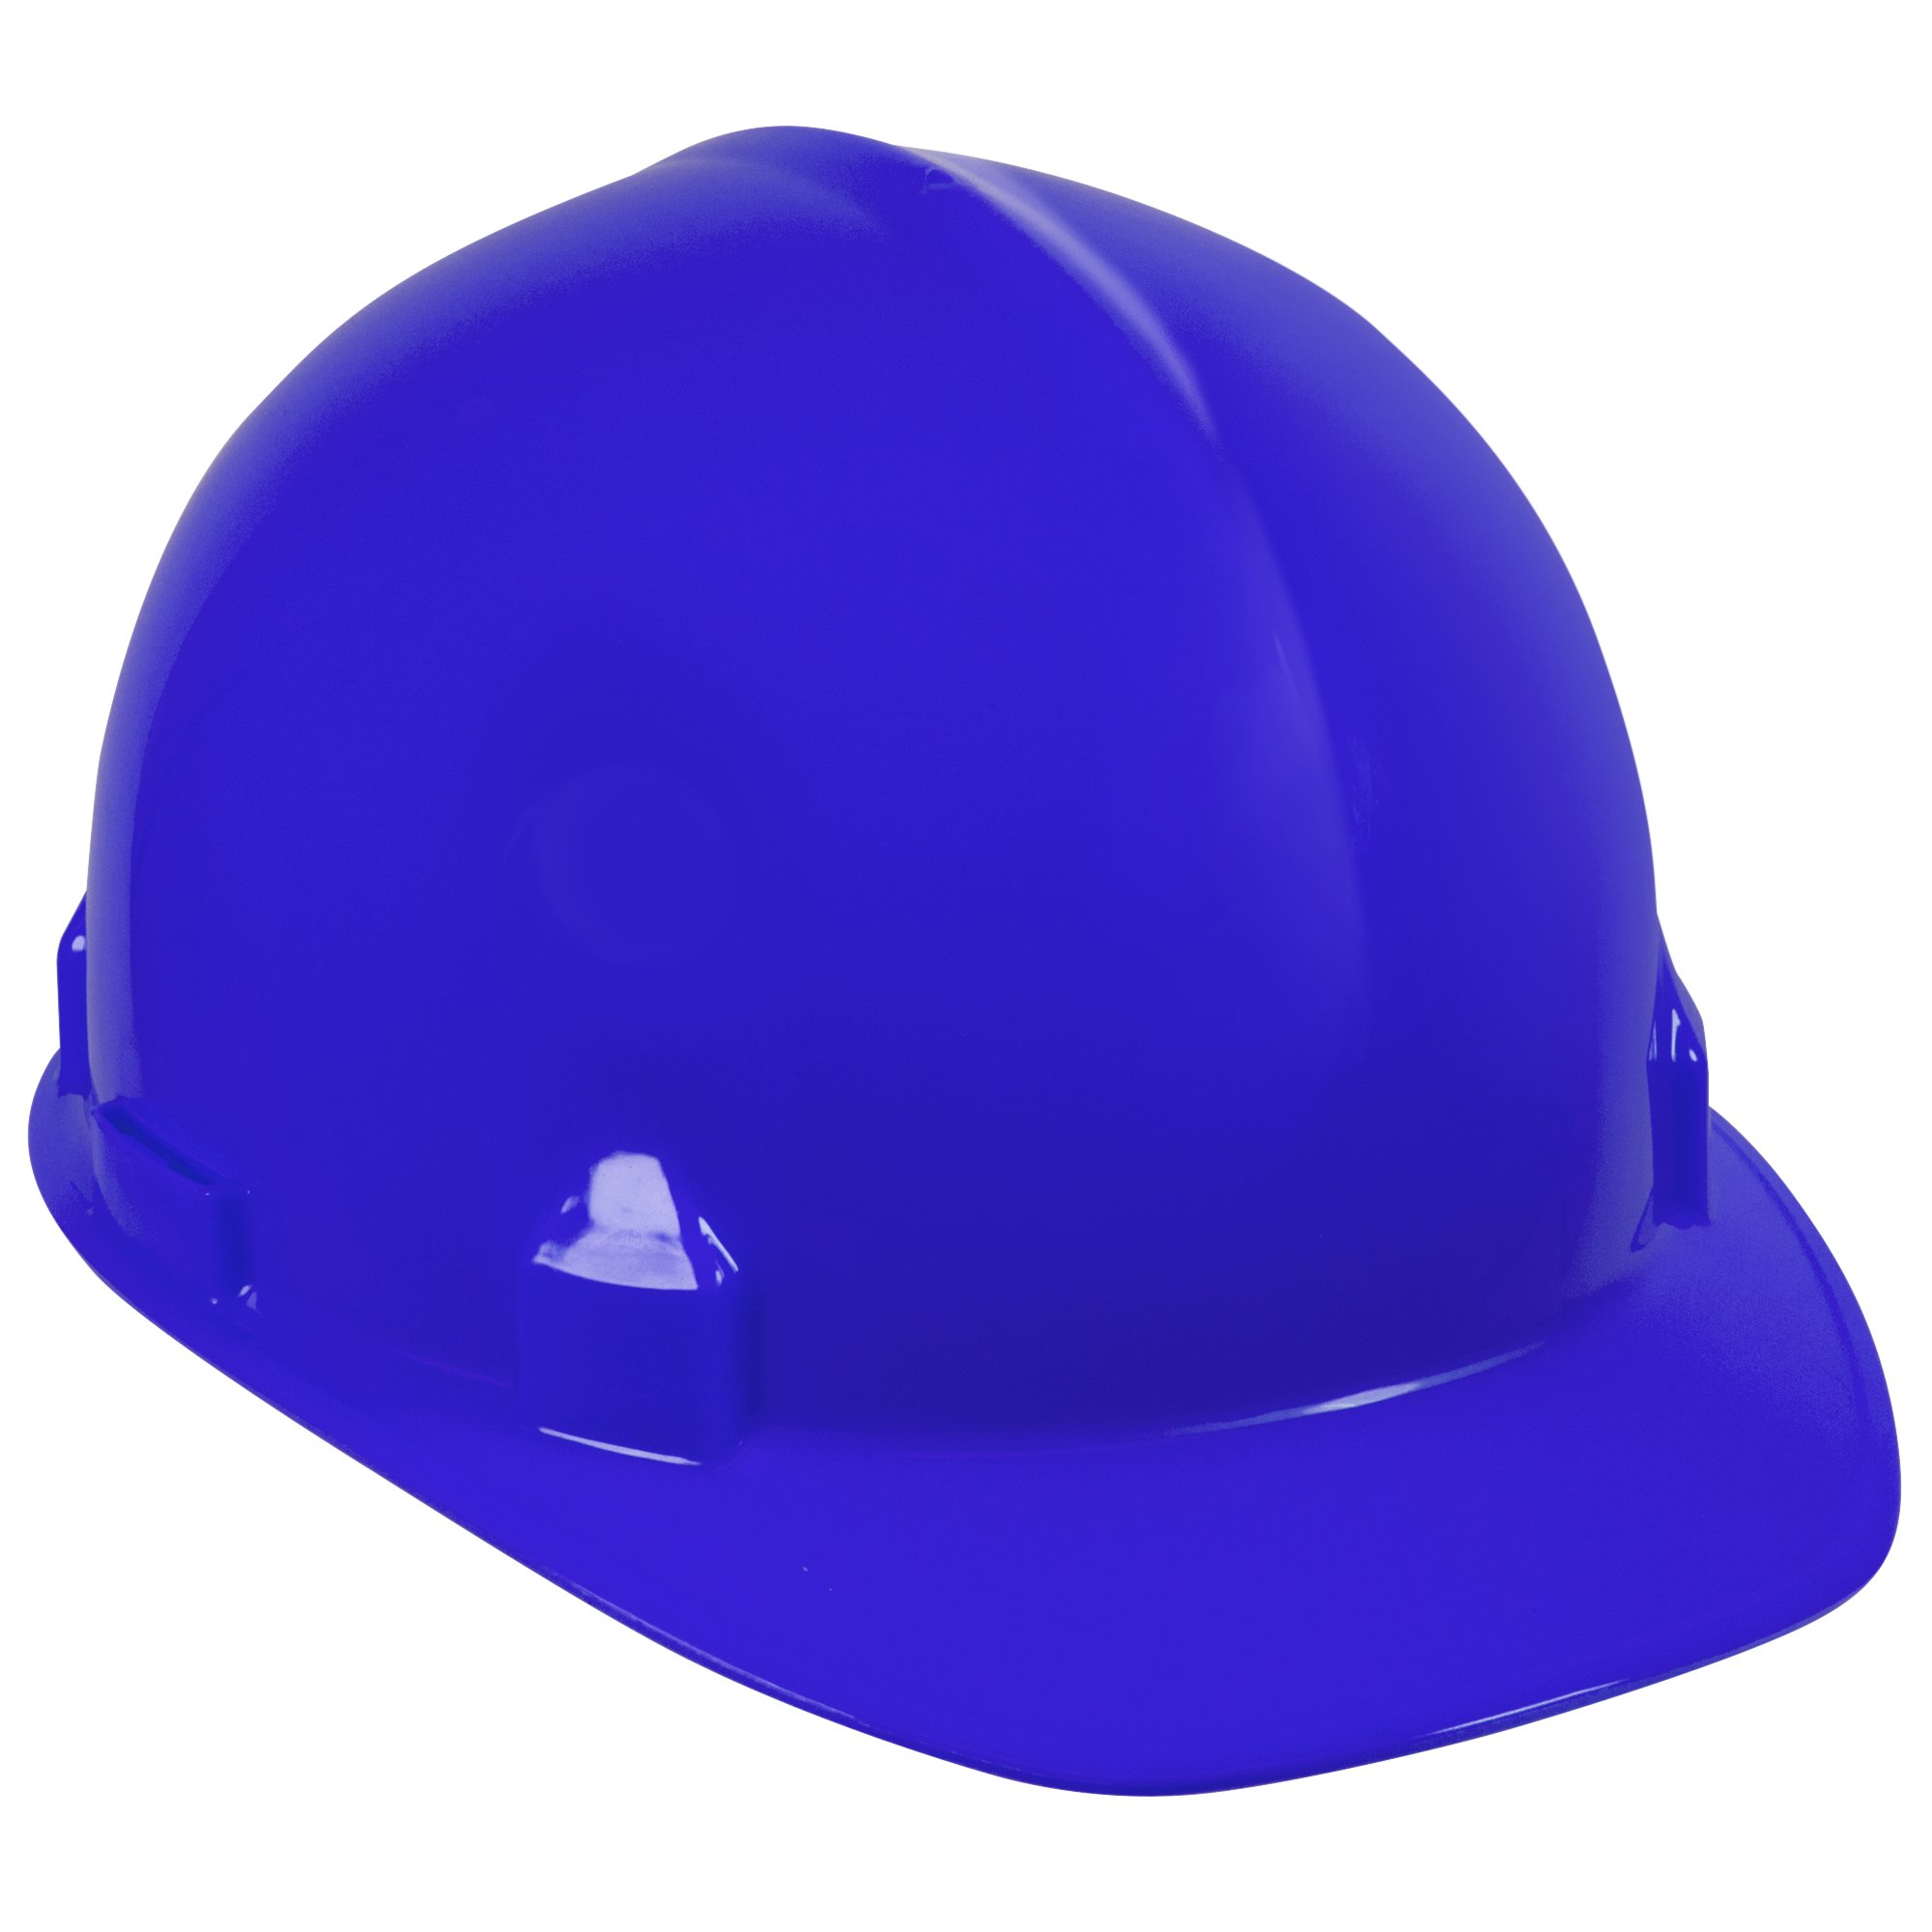 Jackson Safety SC-6 Hard Hat (14838), 4-Point Ratchet Suspension, Smooth Dome, Meets ANSI, Blue, 12 / Case